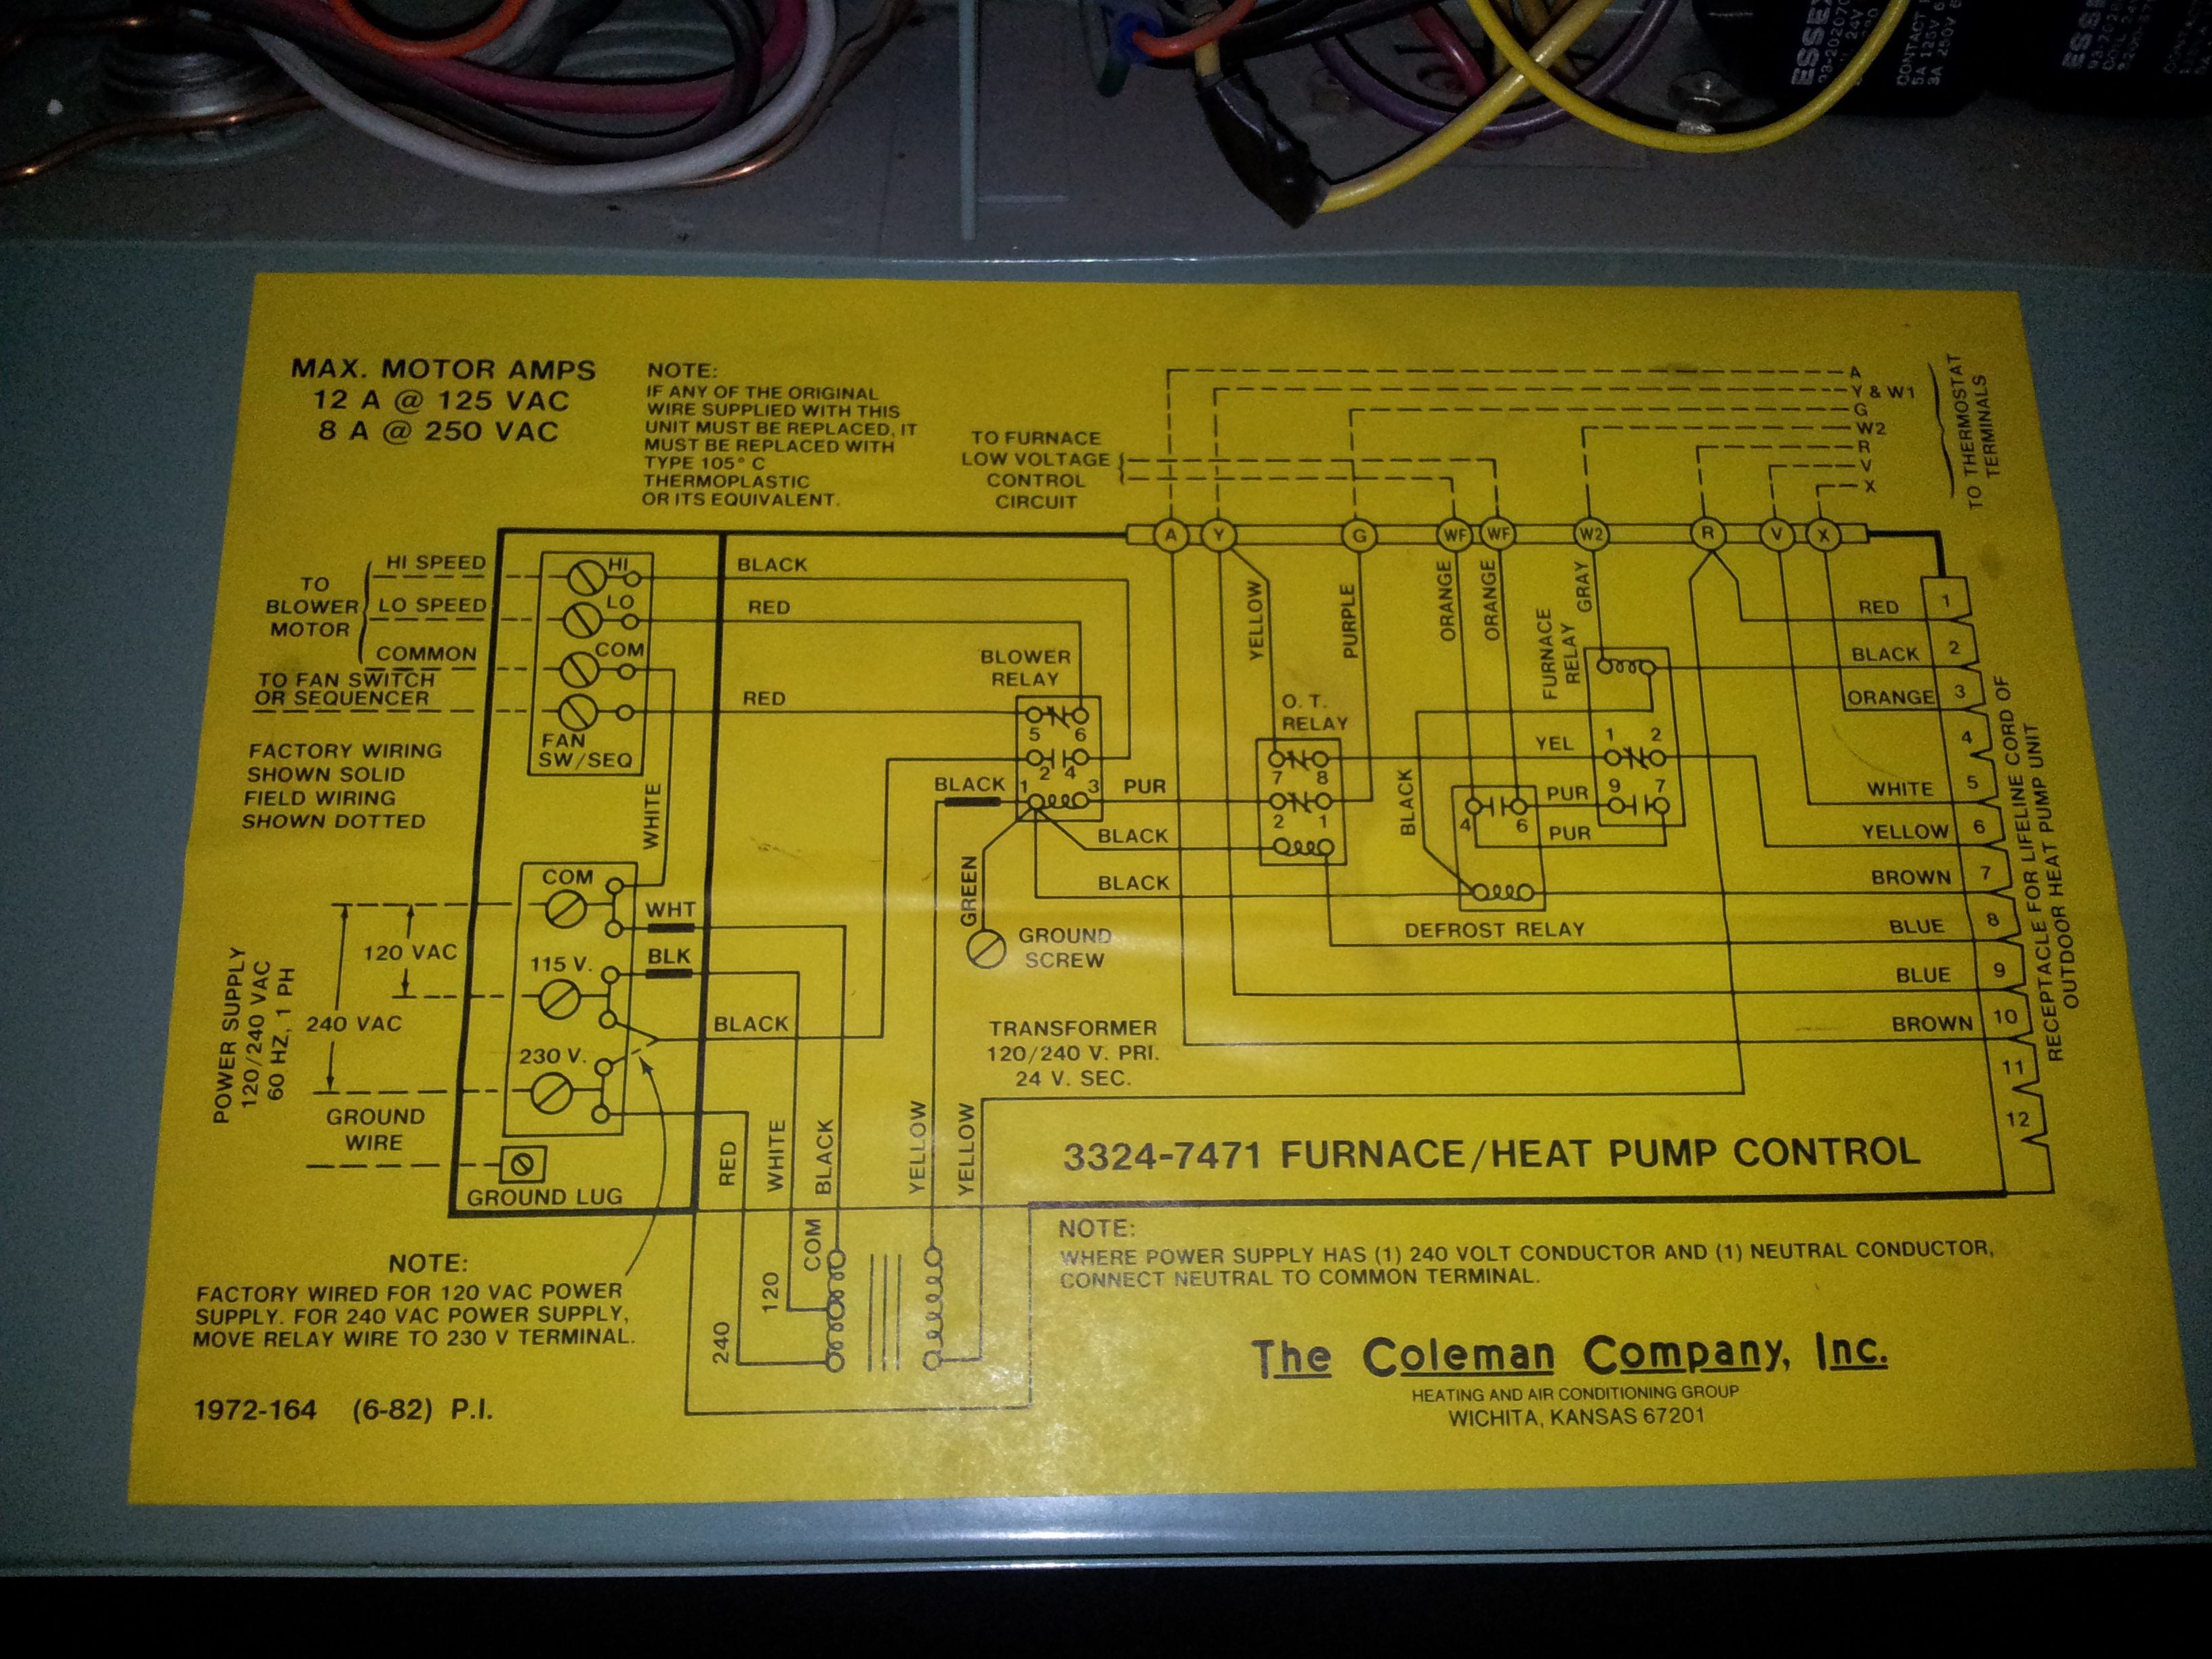 2012 08 07_020543_20120806_170817 wiring diagram for coleman furnace readingrat net coleman evcon thermostat wiring diagram at crackthecode.co